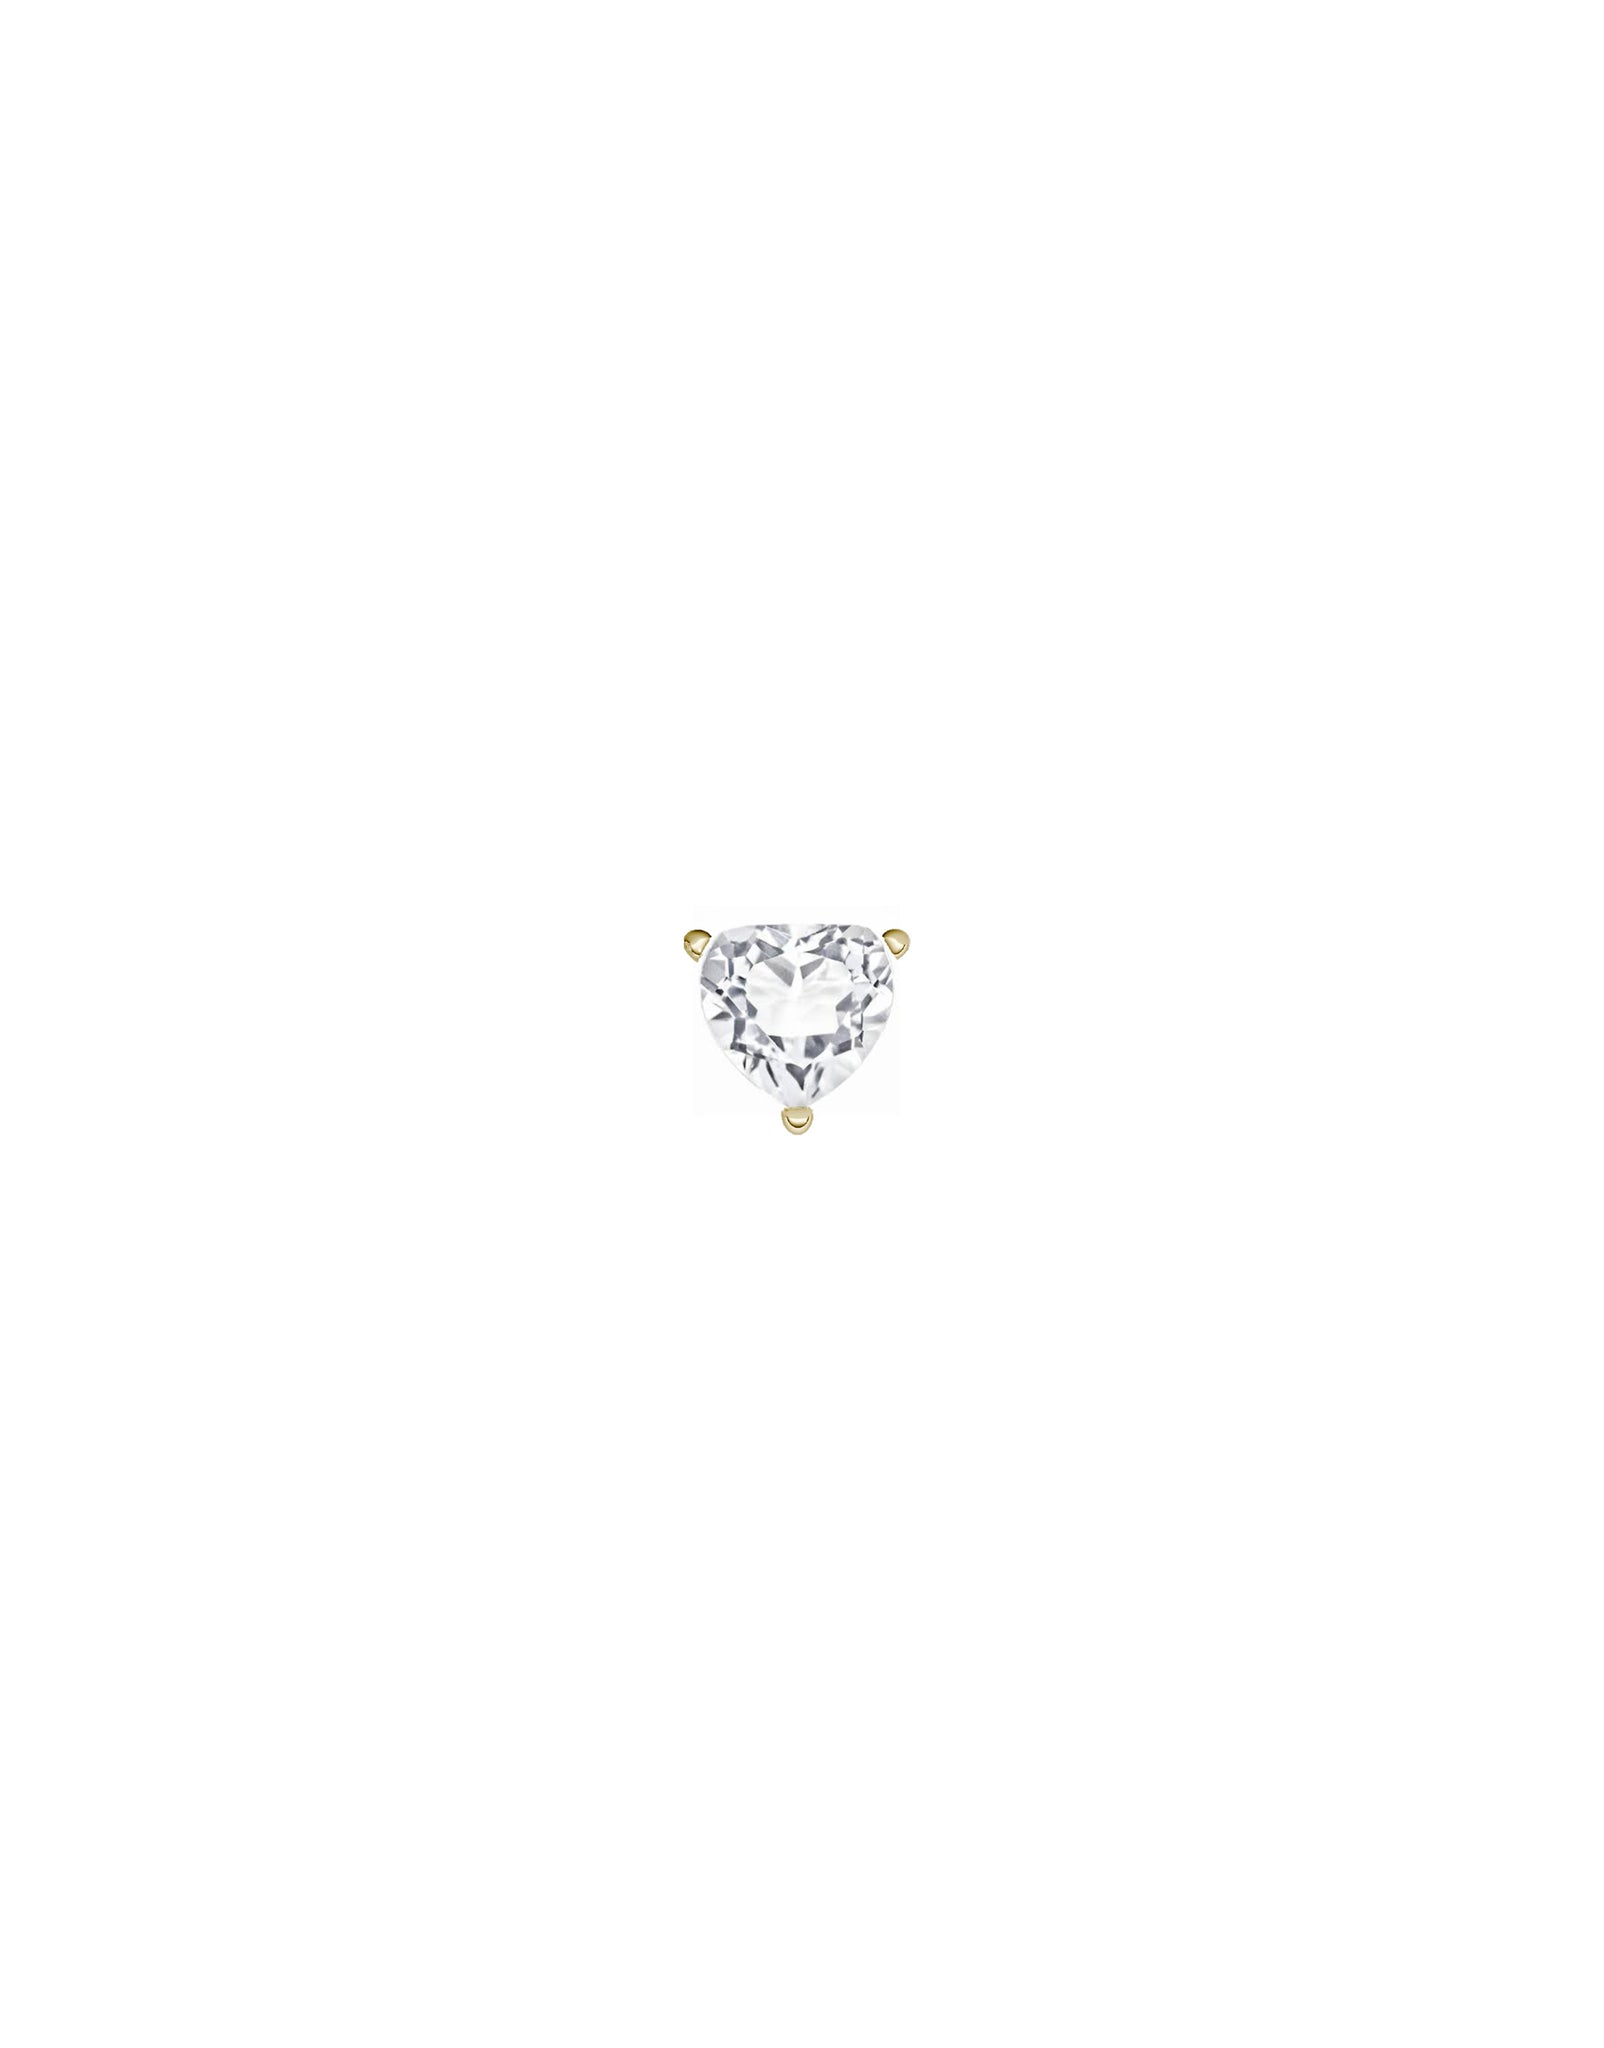 stud earring white topaz gold - personalized stud earring - Nayestones